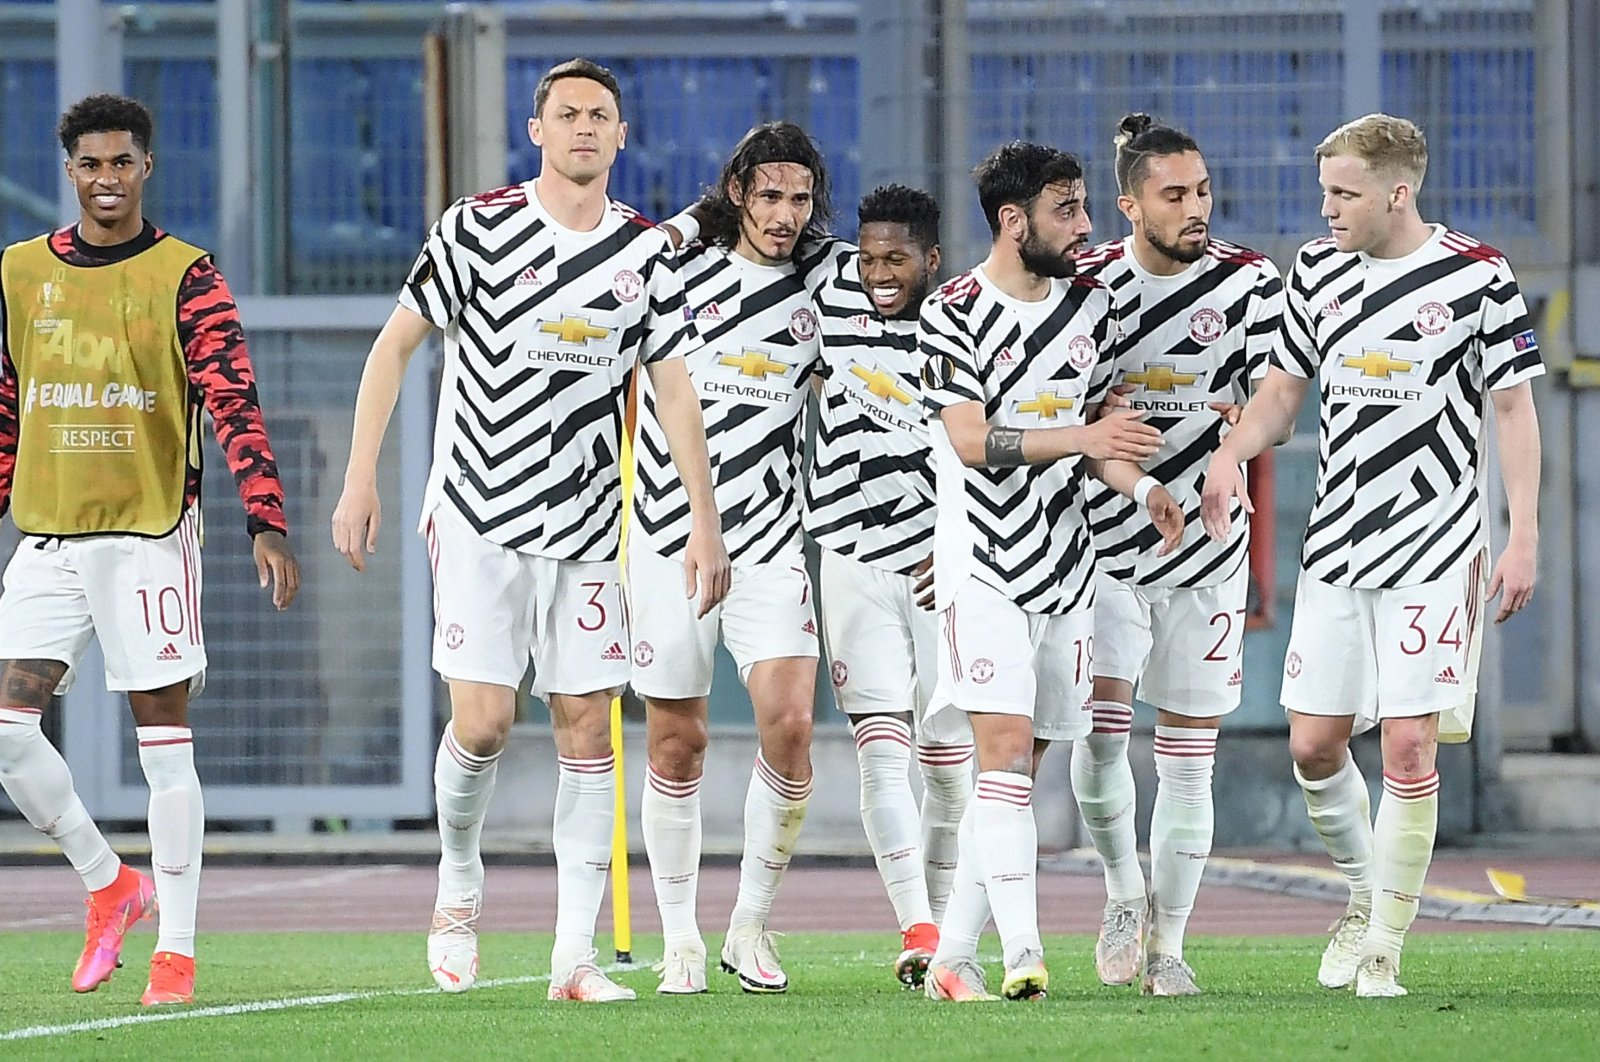 Manchester United players celebrate a goal during a UEFA Europa League match against AS Roma at the Olimpico stadium in Rome, Italy, May 6, 2021. (EPA Photo)